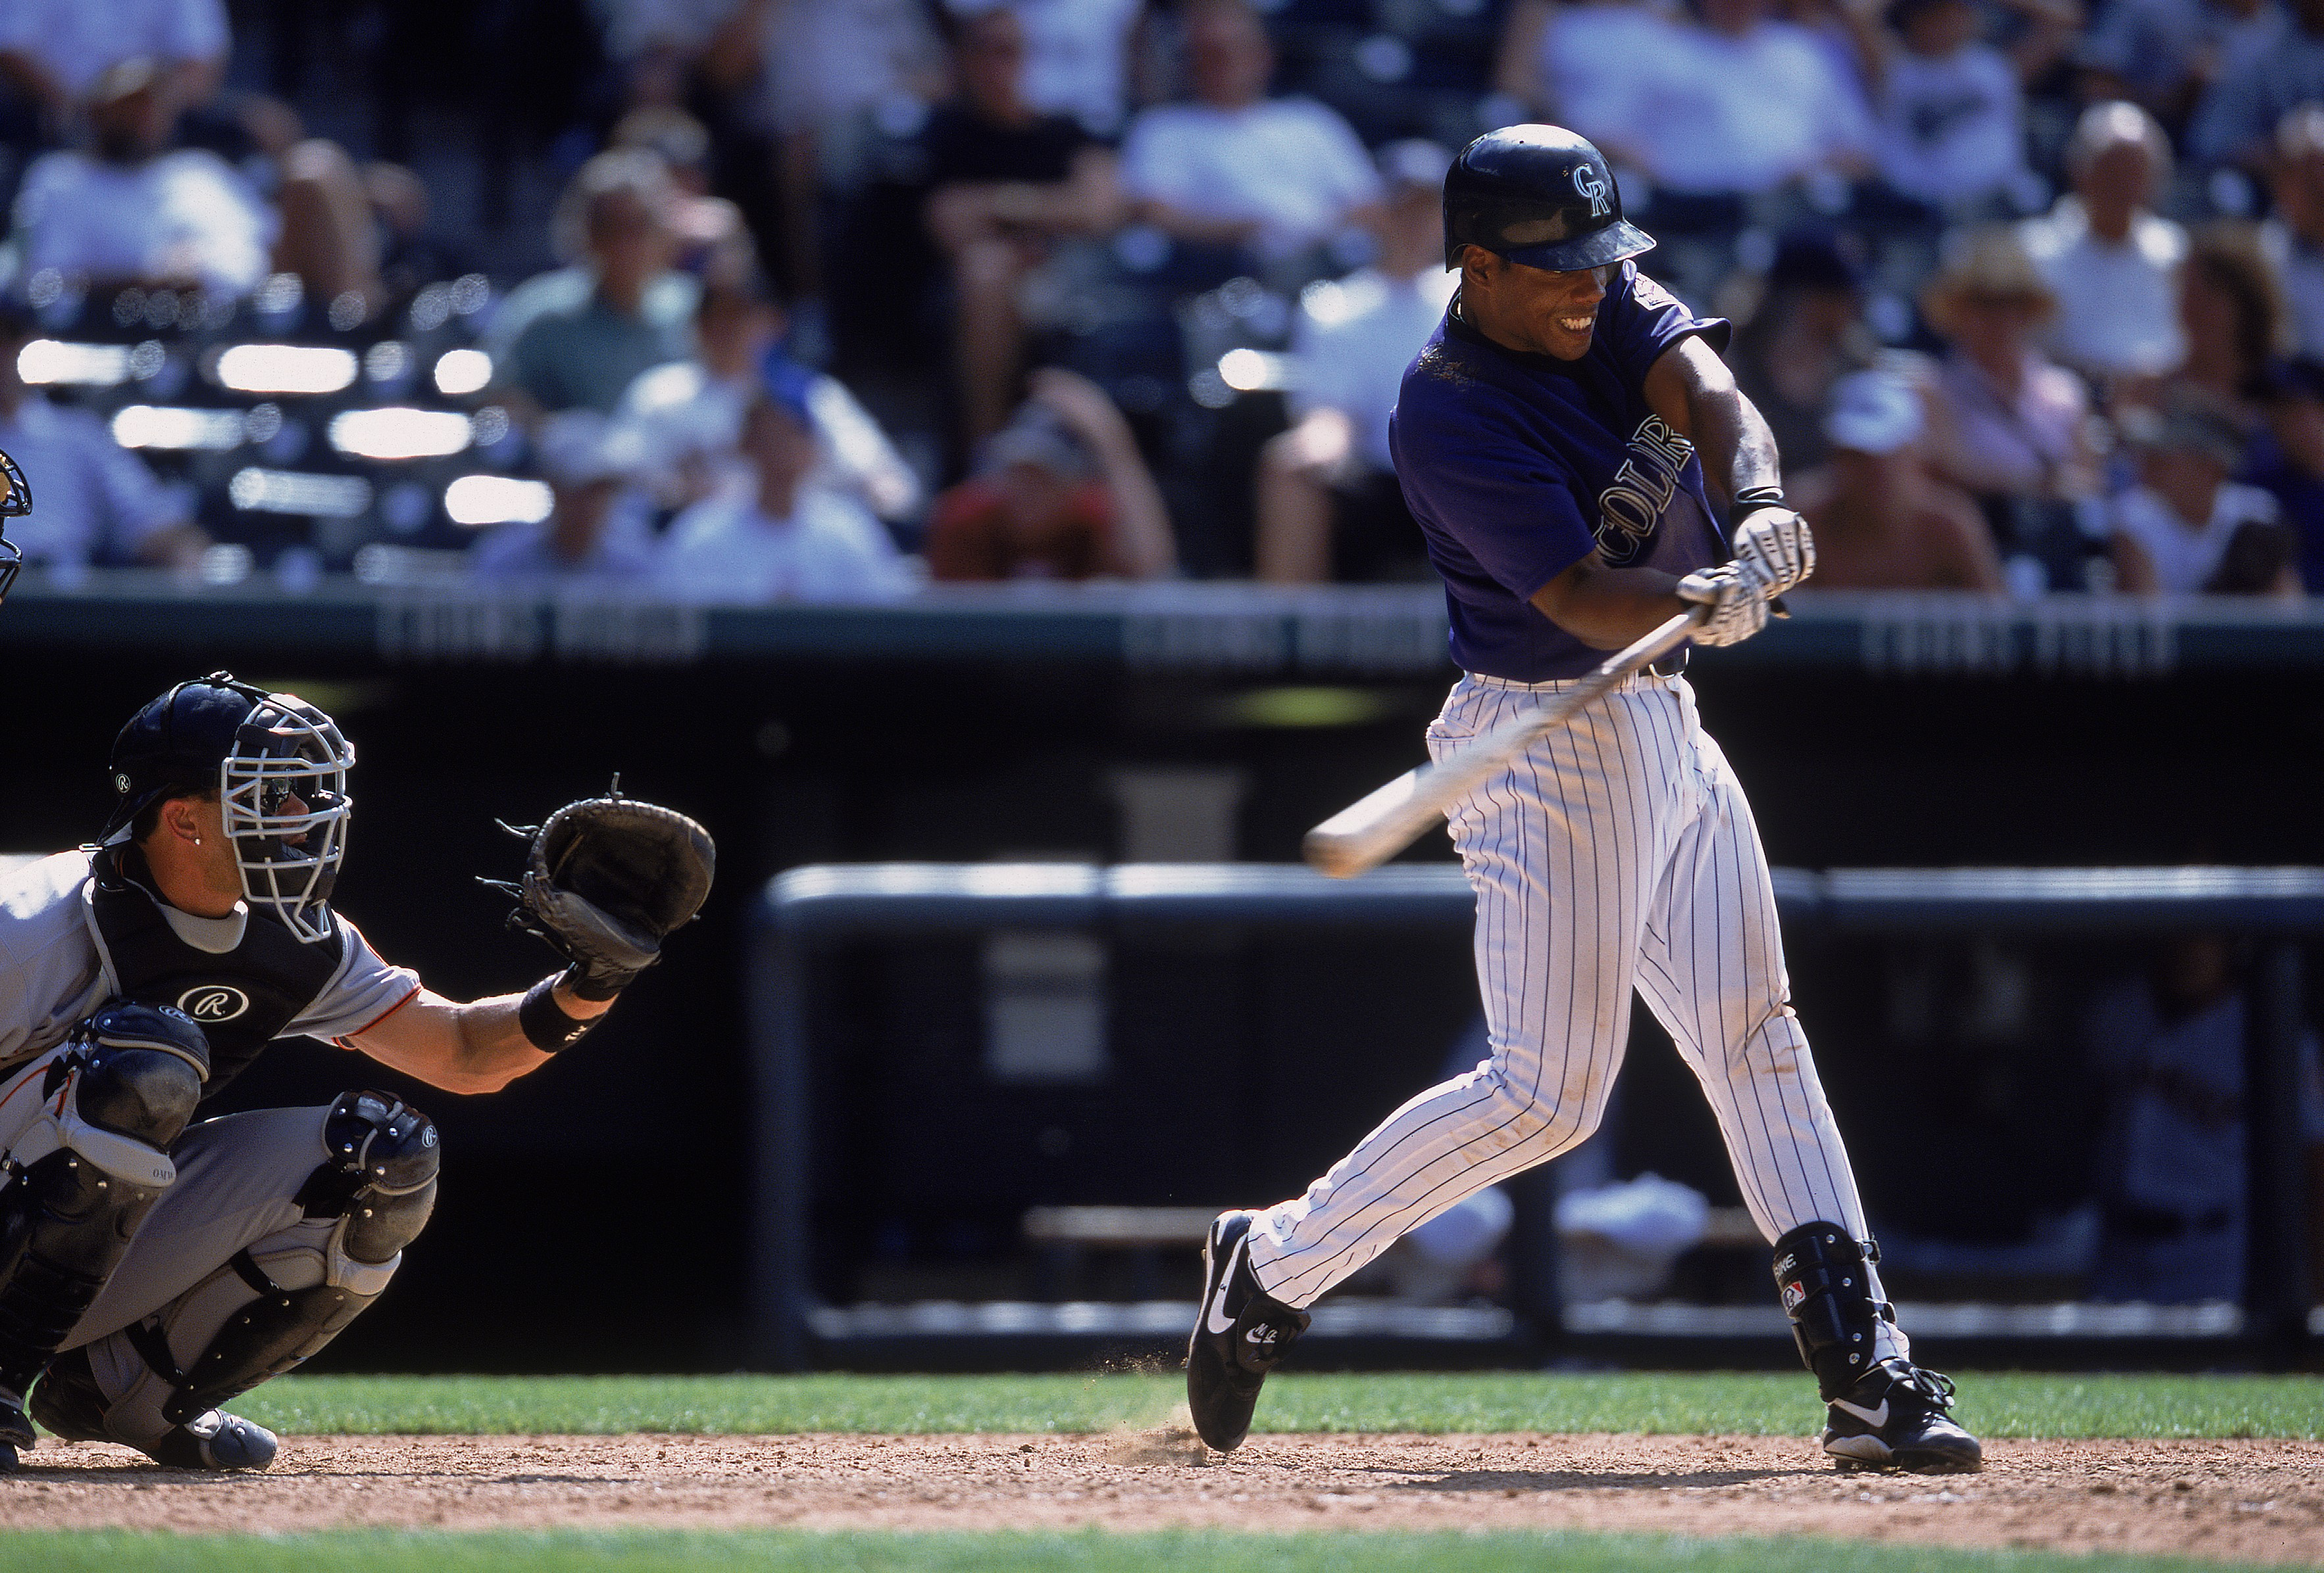 July 25, 2001: Alex Ochoa #3 of the Colorado Rockies at bat during the game against the San Francisco Giants at Coors Field in Denver, Colorado. The Giants defeated the Rockies 9-3.(credit: Brian Bahr/Allsport/Getty Images)